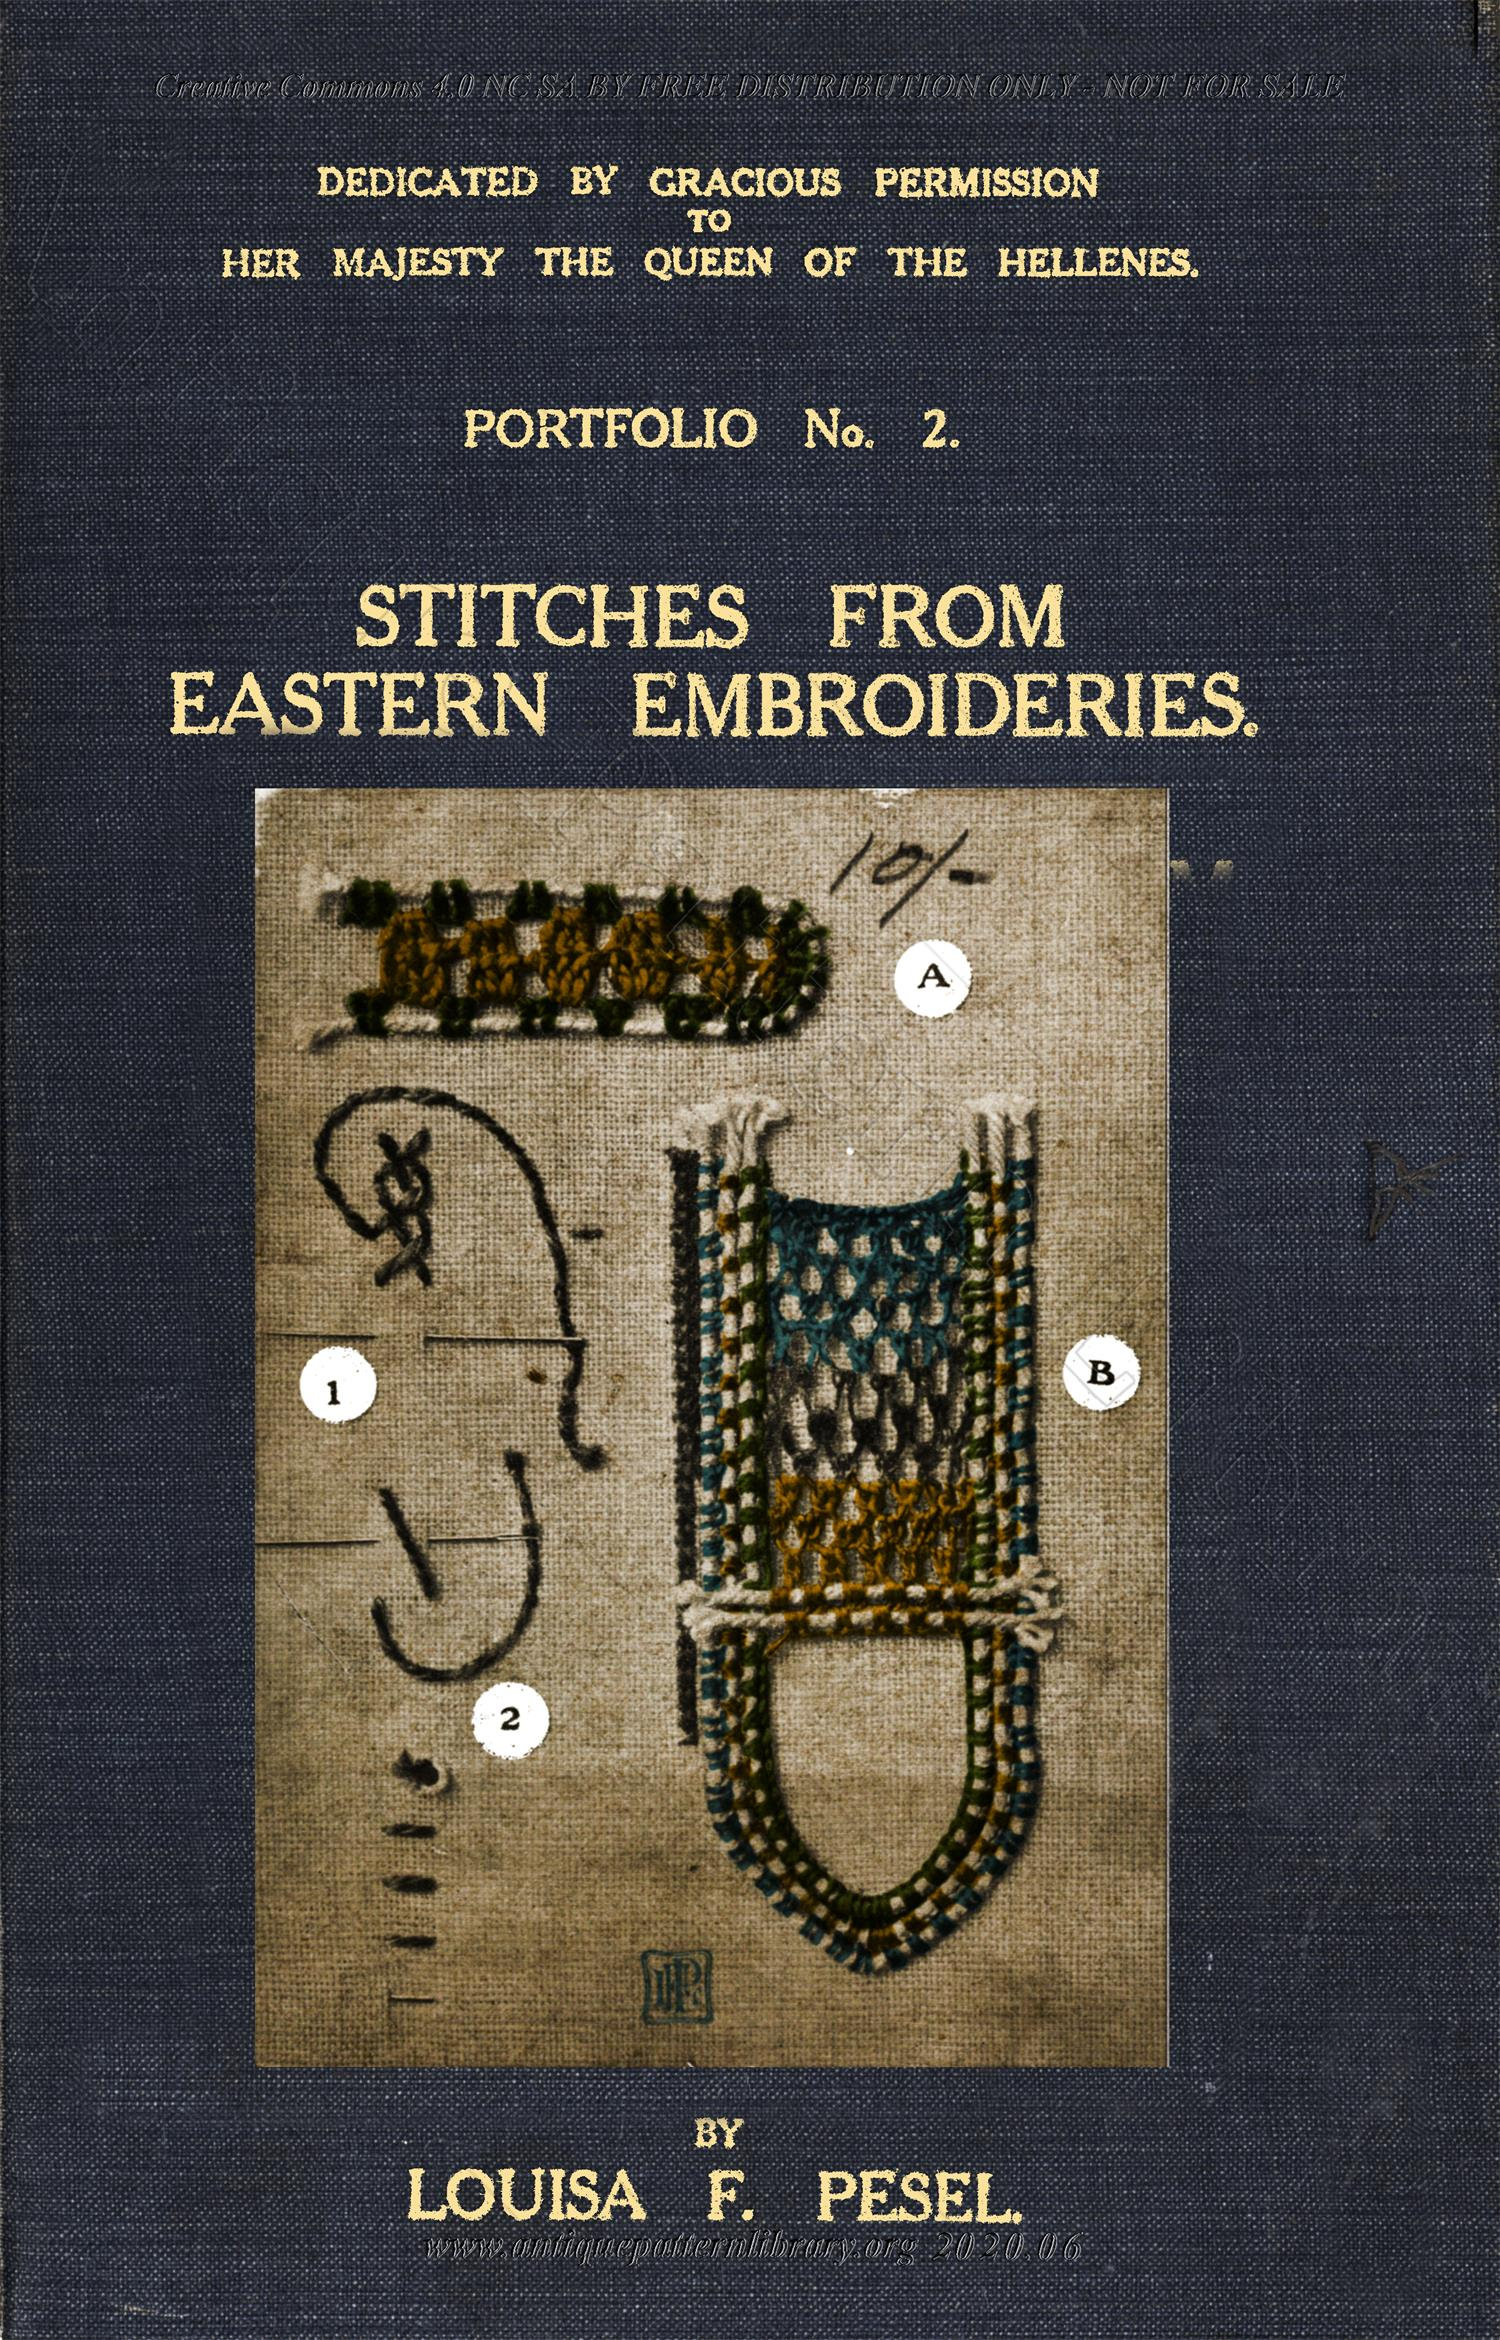 K-YS004 Portfolio No. 2 - Stitches from Eastern Embroideries